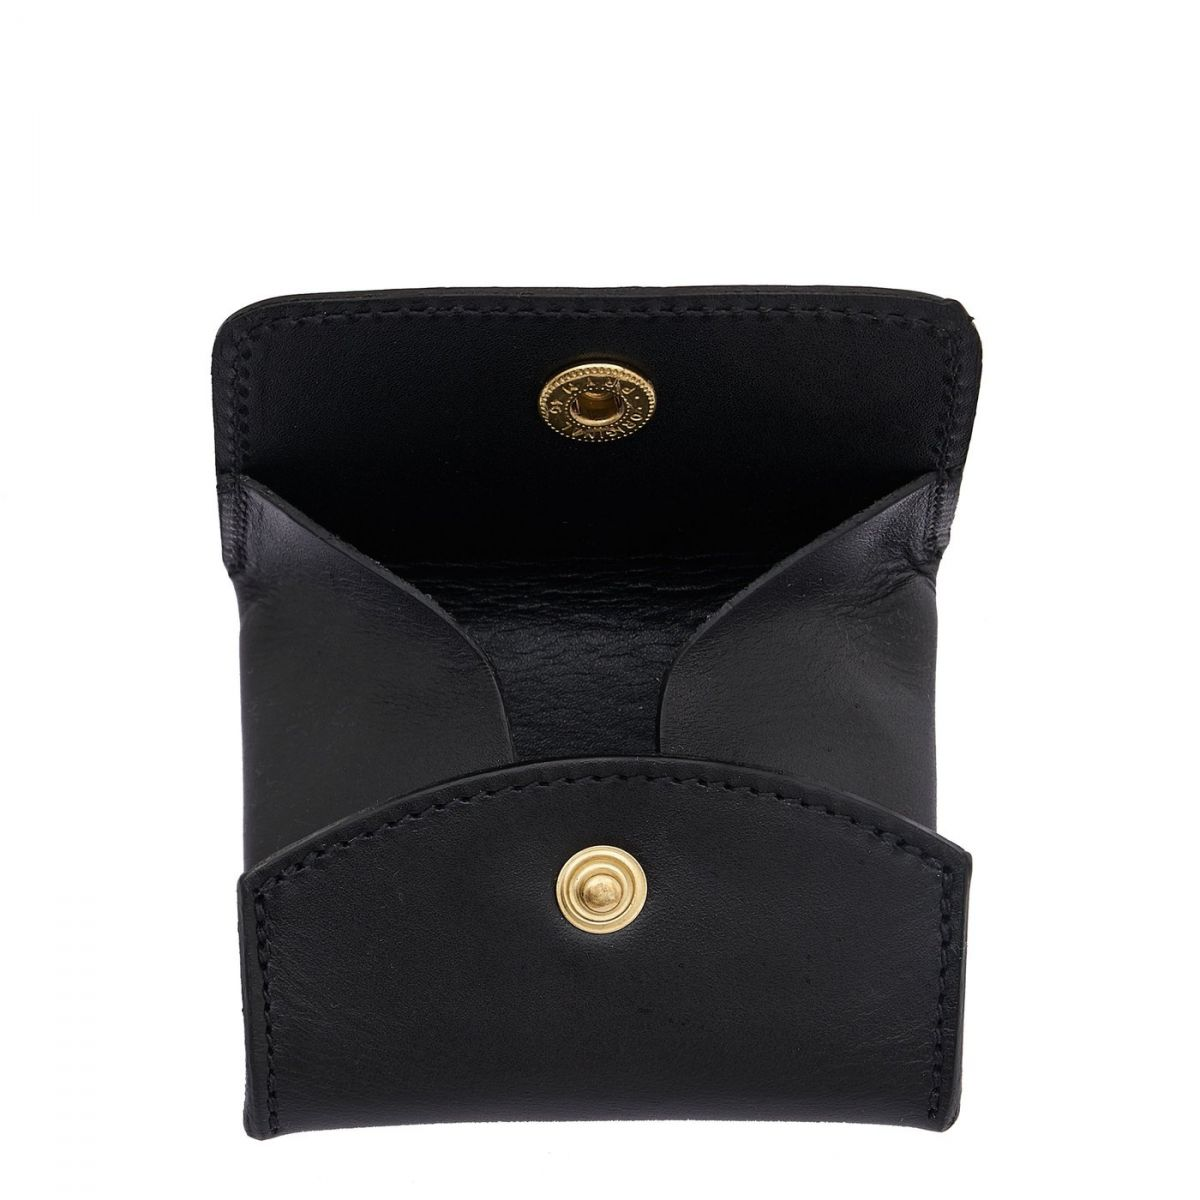 Coin Purse in Cowhide Leather SCP020 color Black | Details